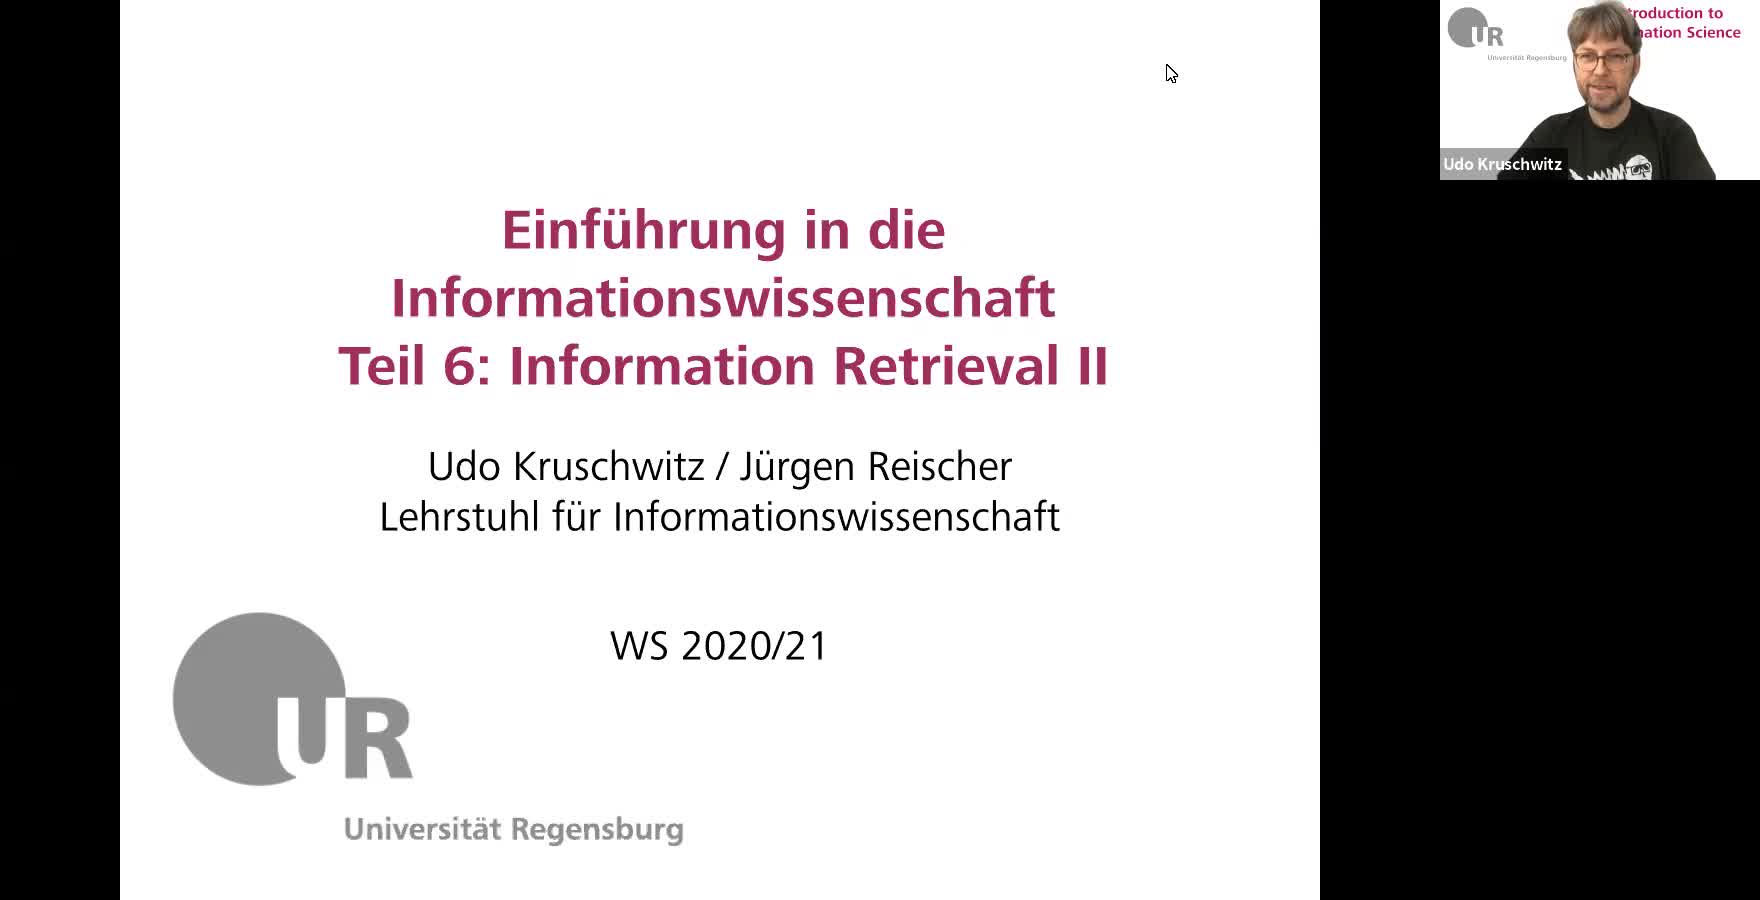 Introduction to Information Science - Lecture 10 (Information Retrieval II)